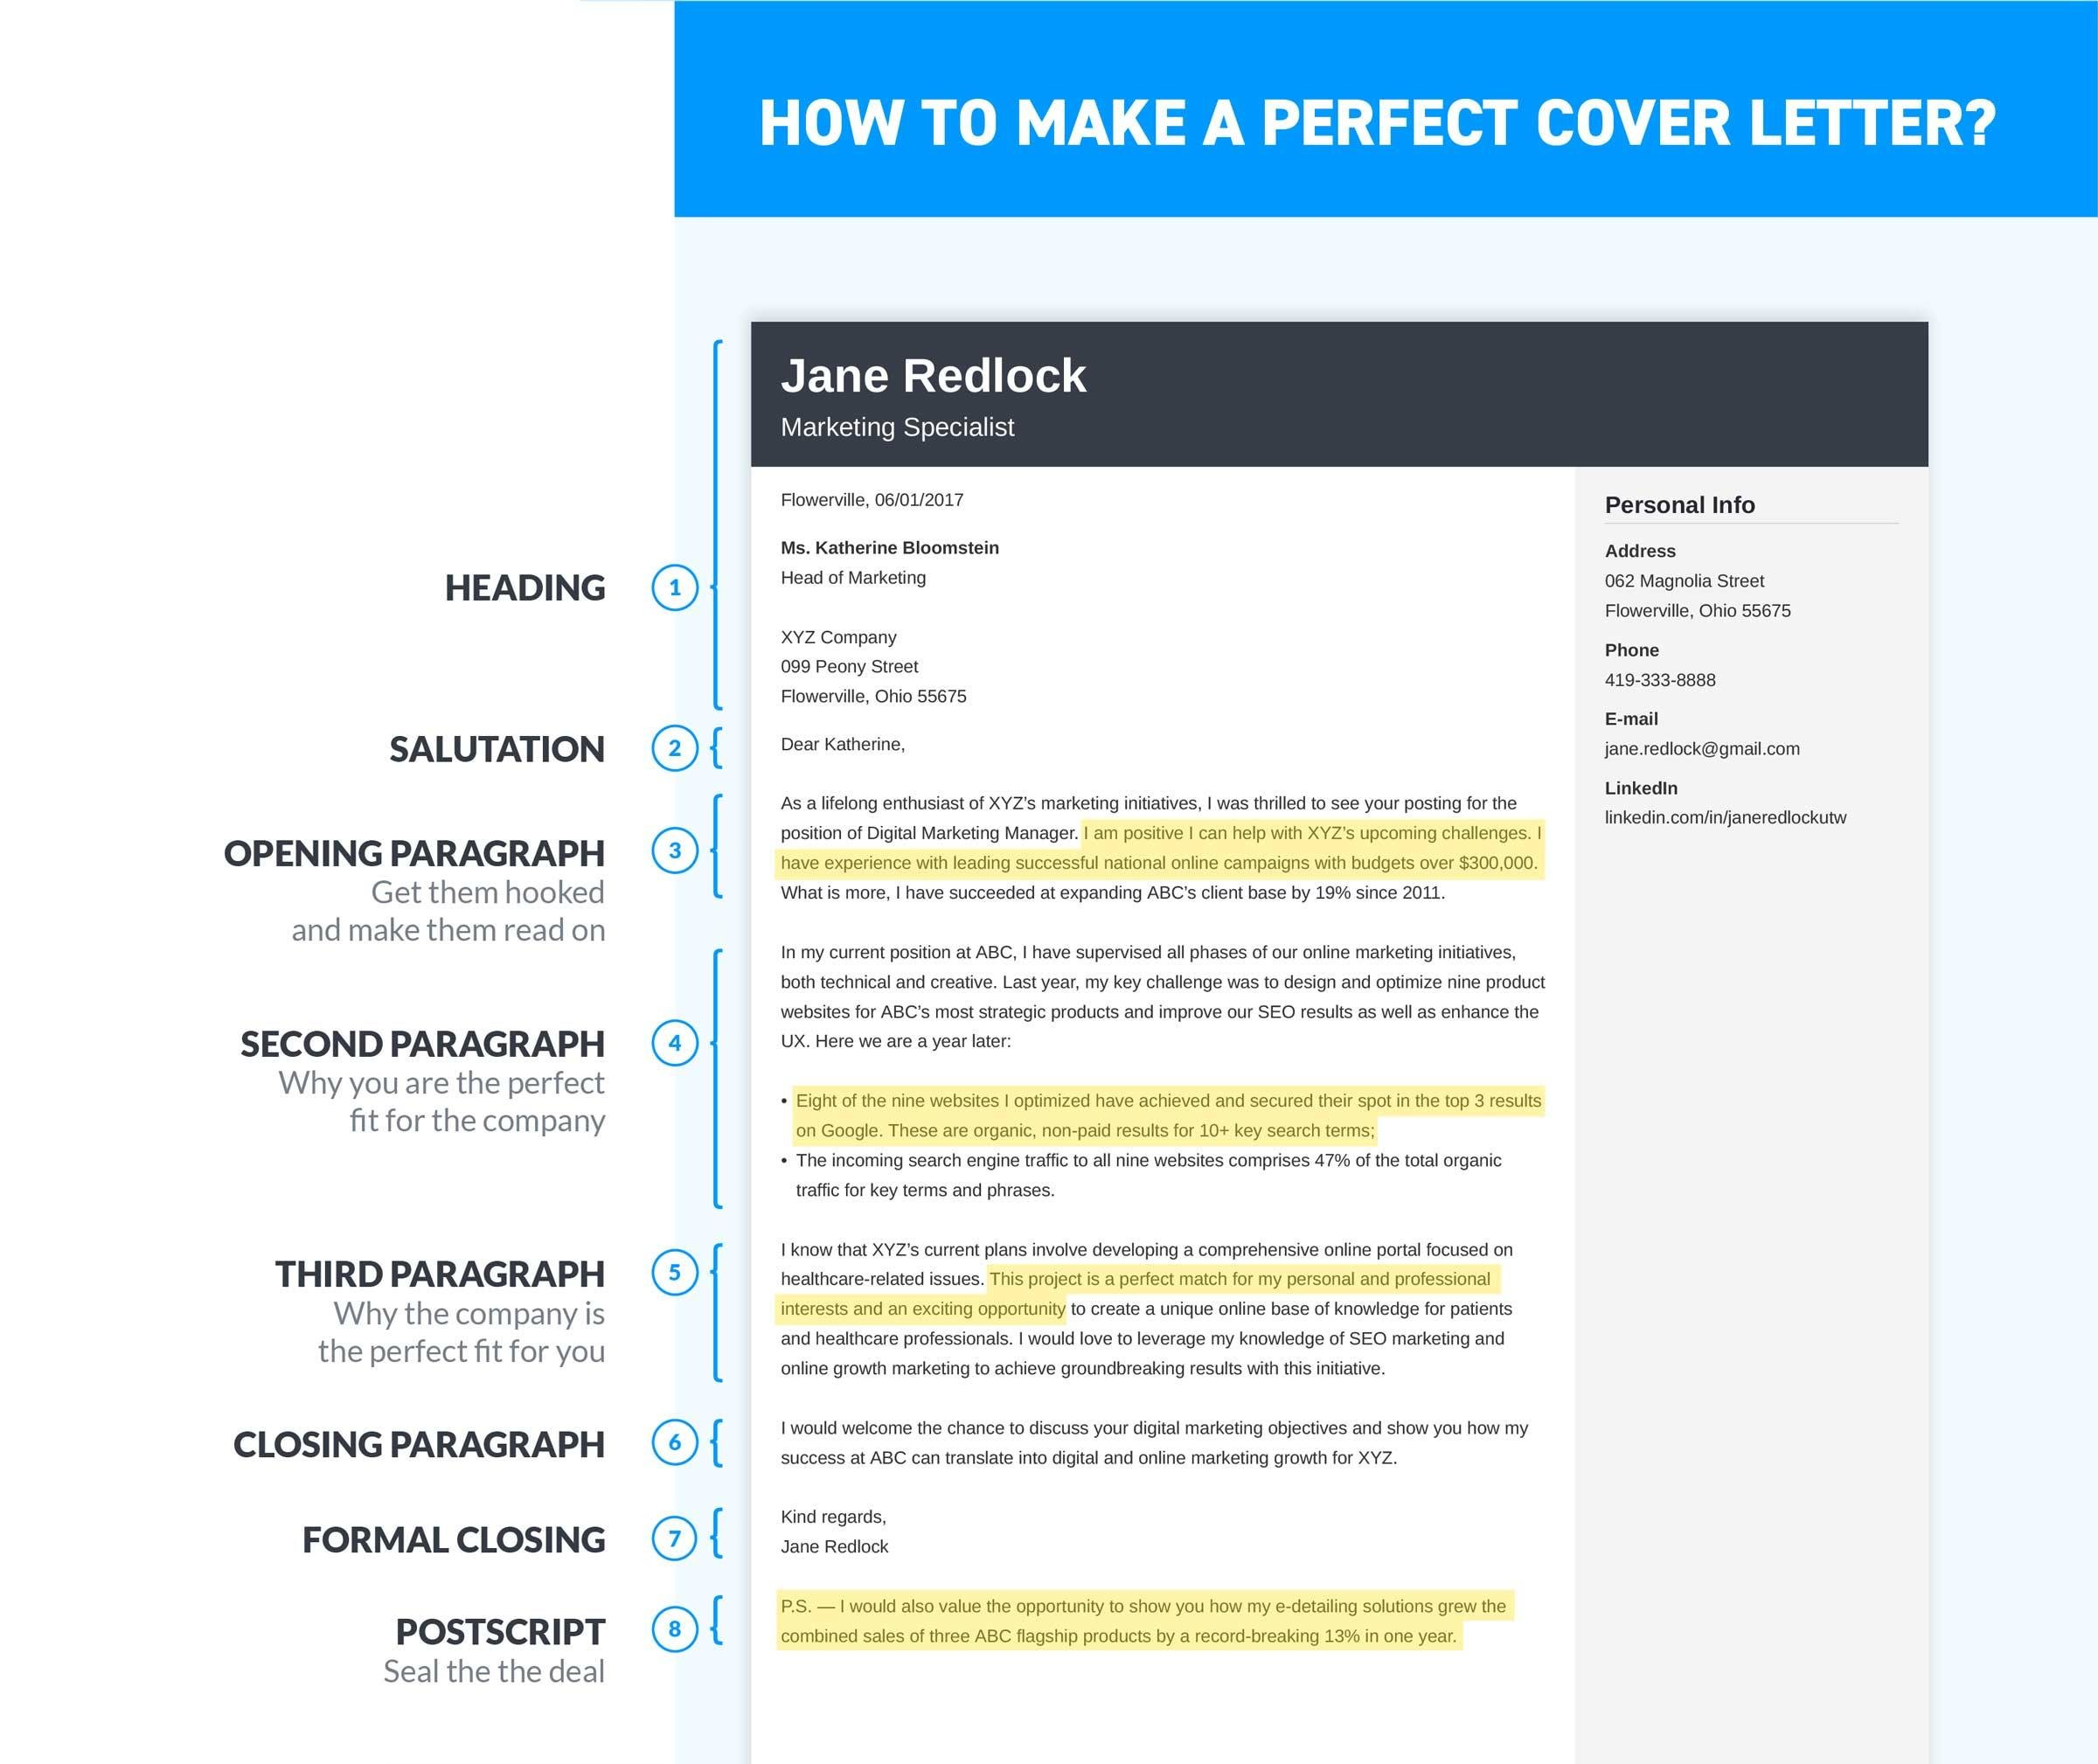 how to make a perfect cover letter infographic - How To Make The Perfect Cover Letter